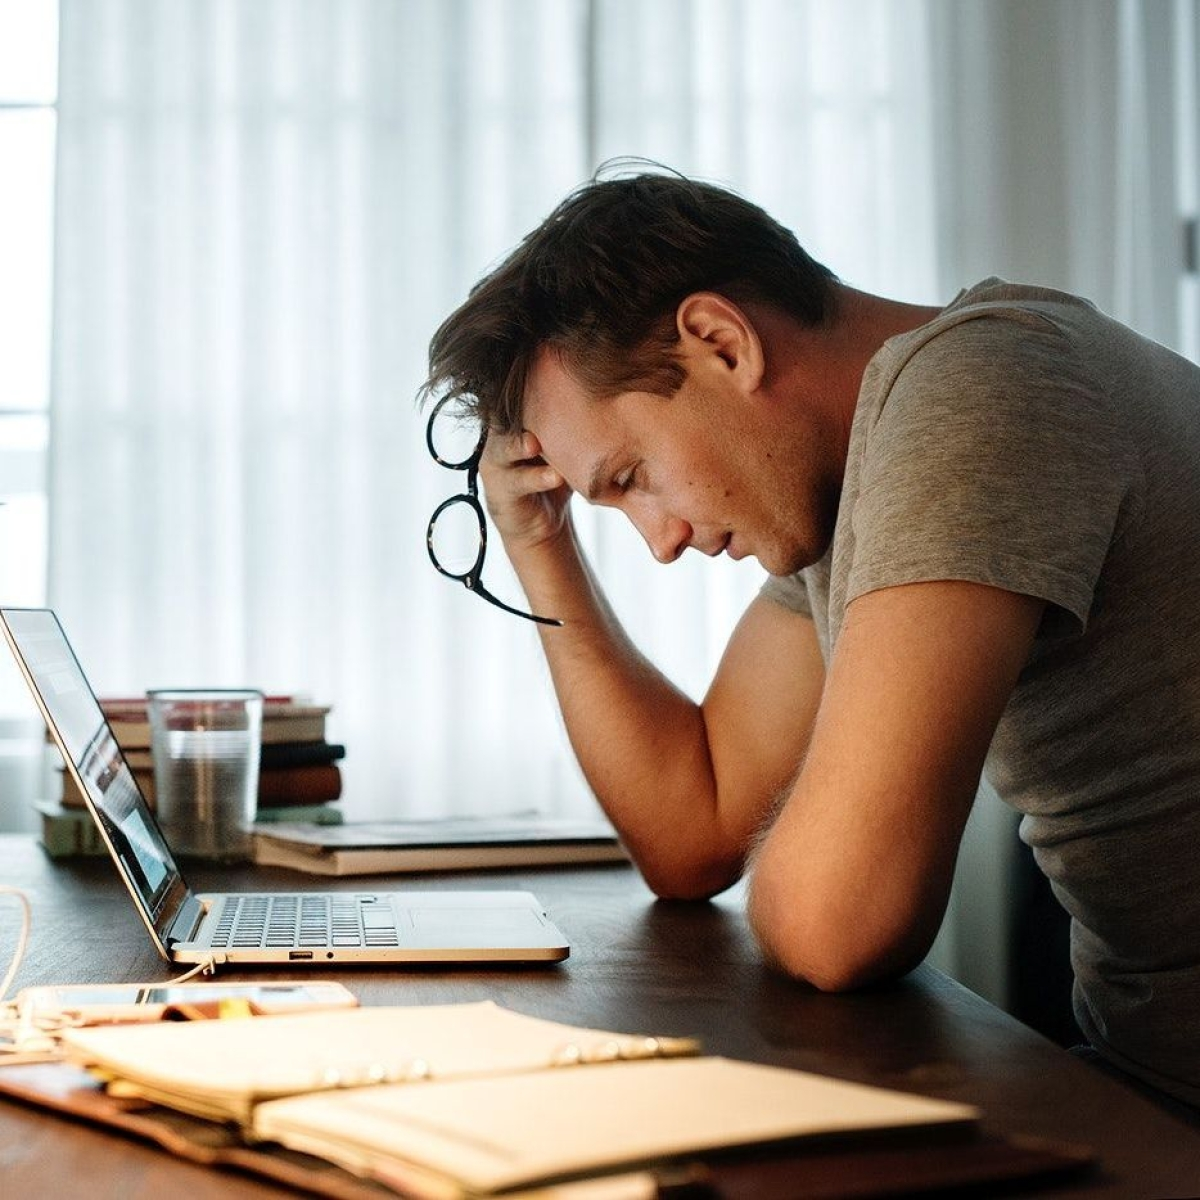 New study provides insights on bouncing back from job loss